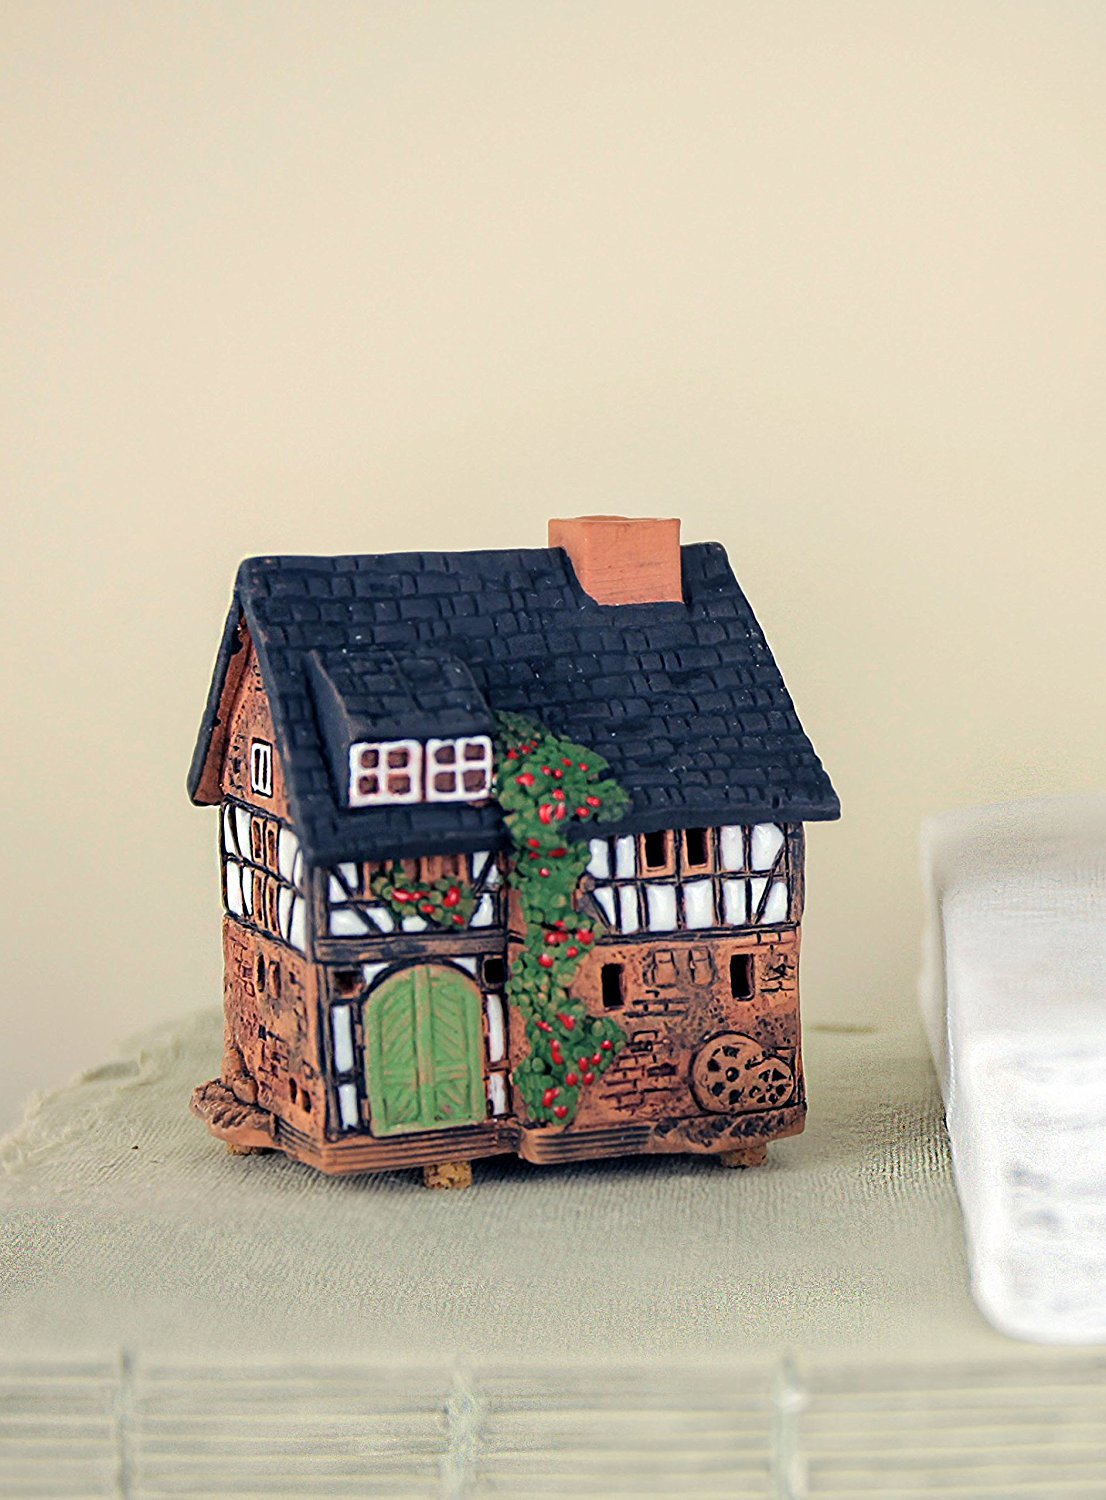 Midene Handmade ceramic aroma candle house by Art Studio Historic houses in Lauterbach S19-5